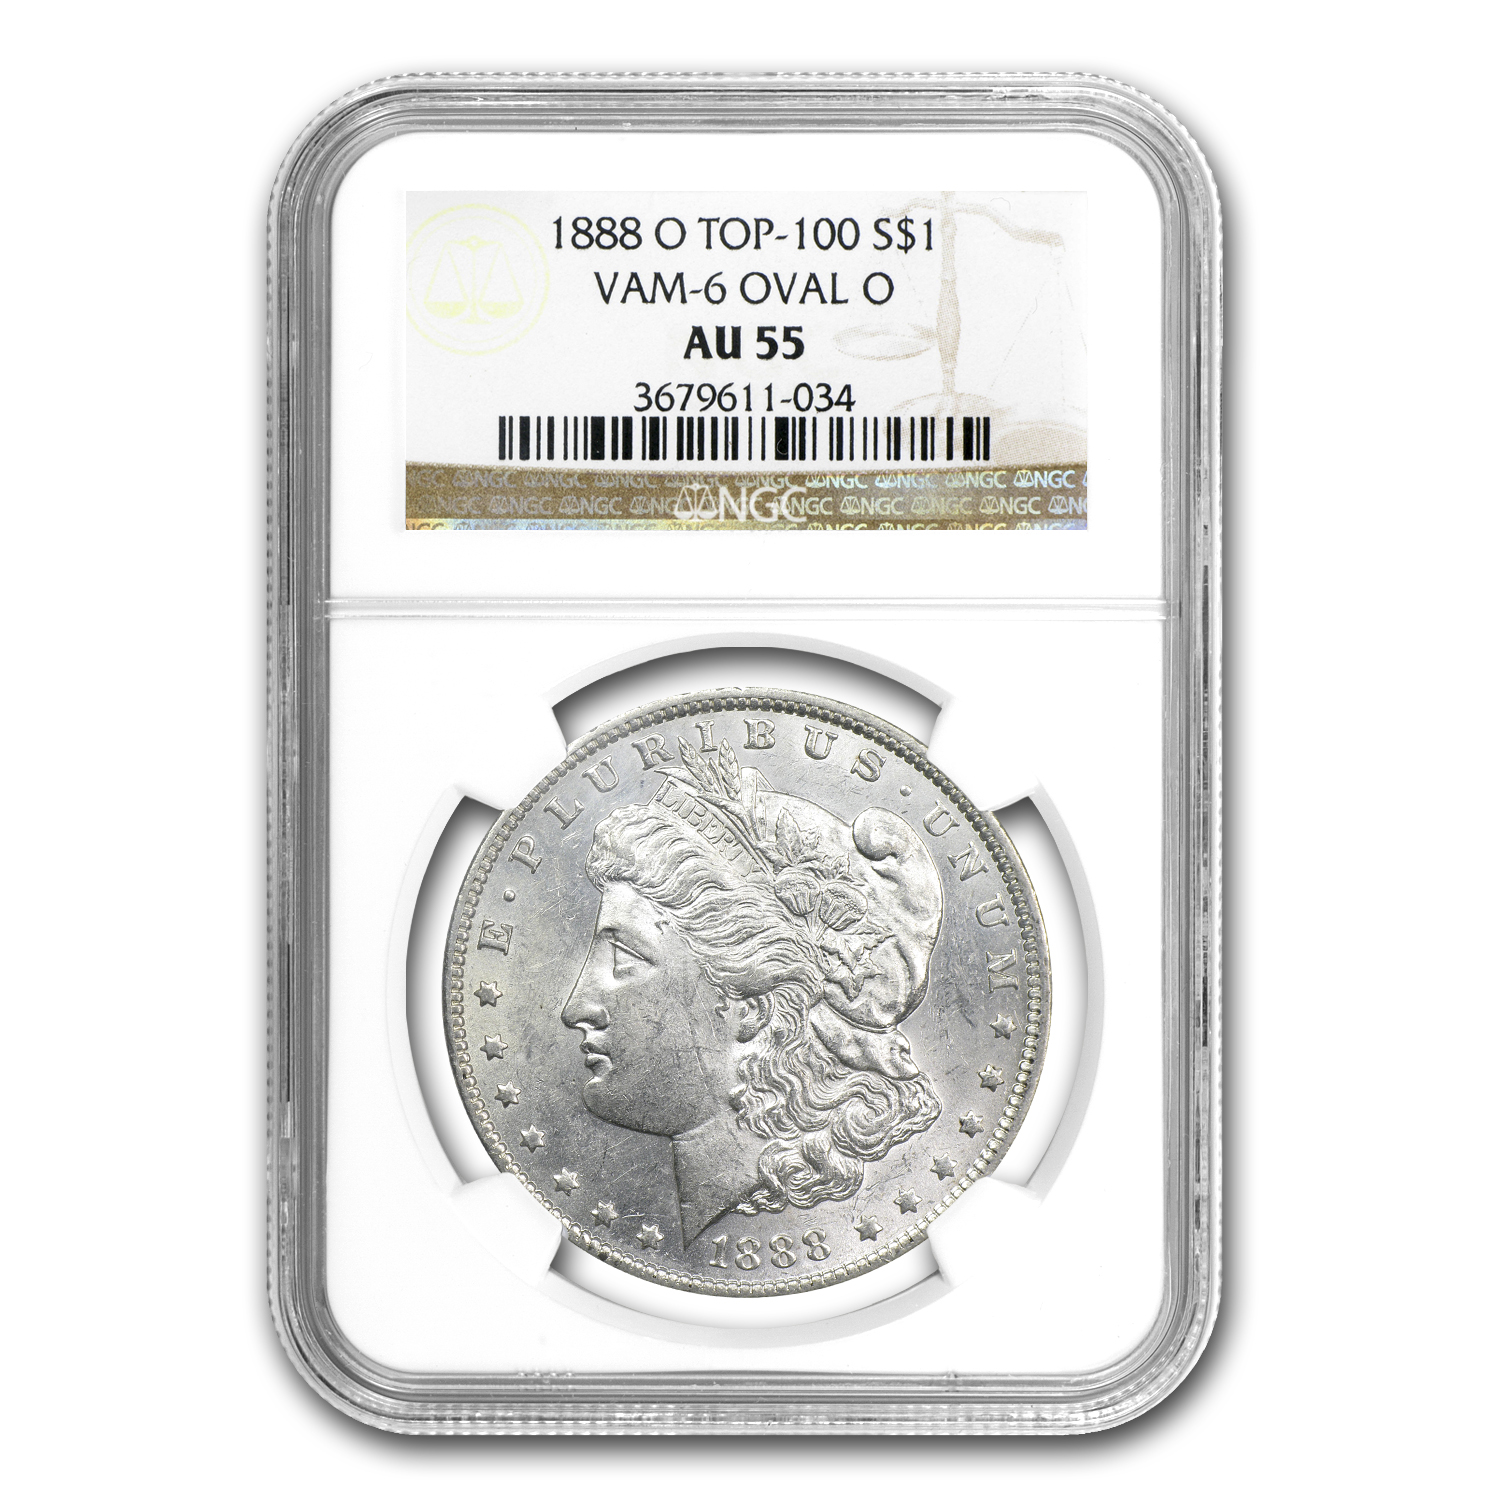 1888-O Morgan Dollar AU-55 NGC VAM-6 Oval O Top-100